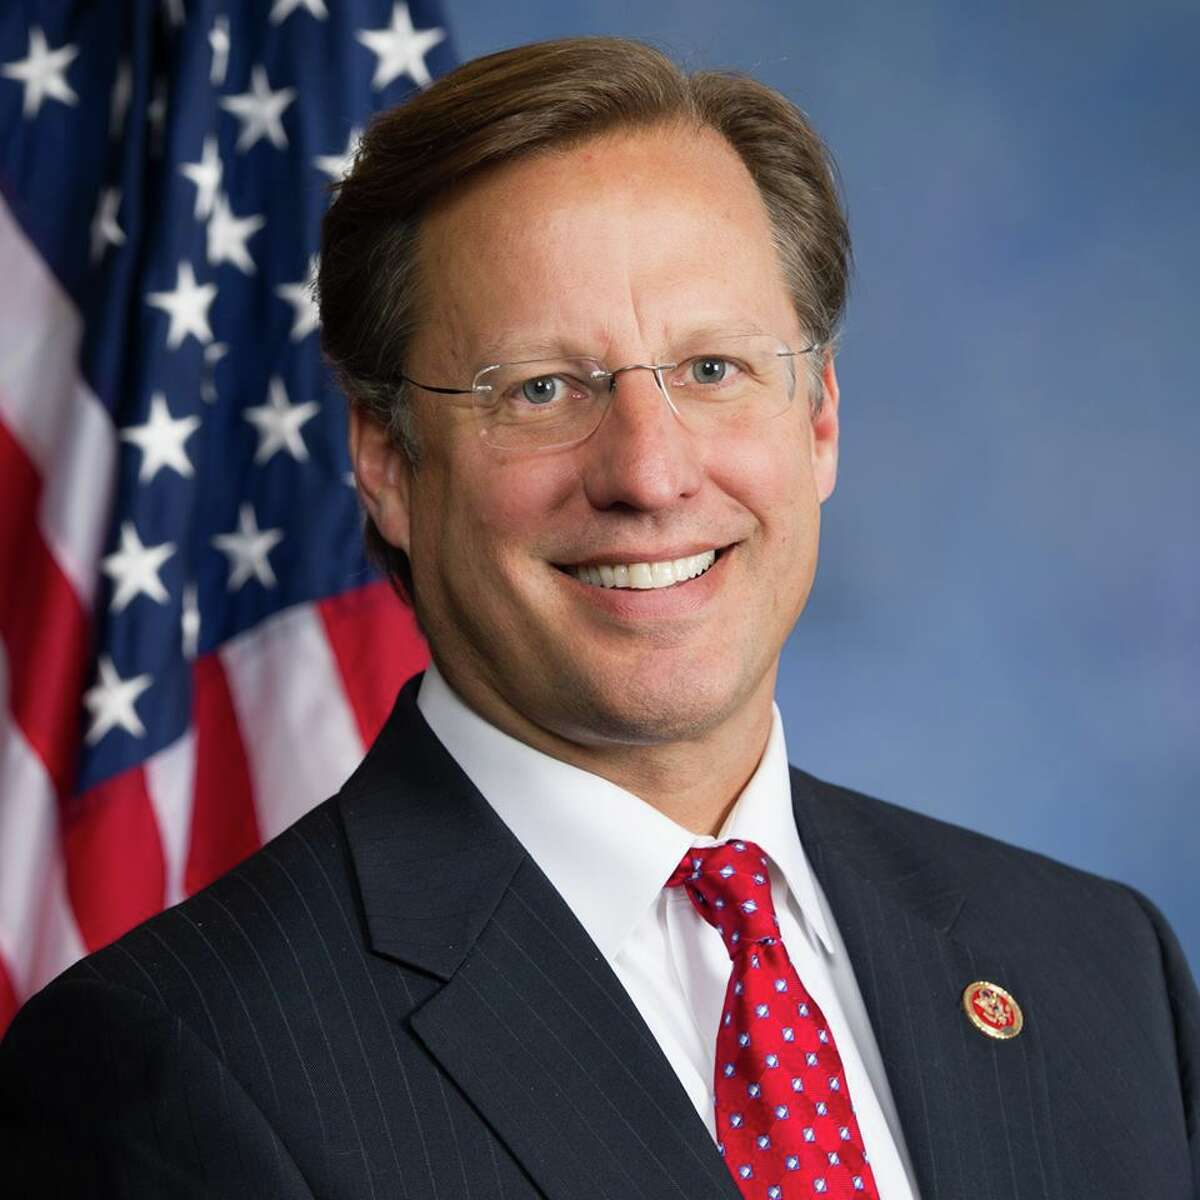 """U.S. Rep. David Brat (R-Virginia) told conservative talk radio host Rusty Humphries """"In our country it looks like we have an ISIS center in Texas now, that's been reported last week."""""""